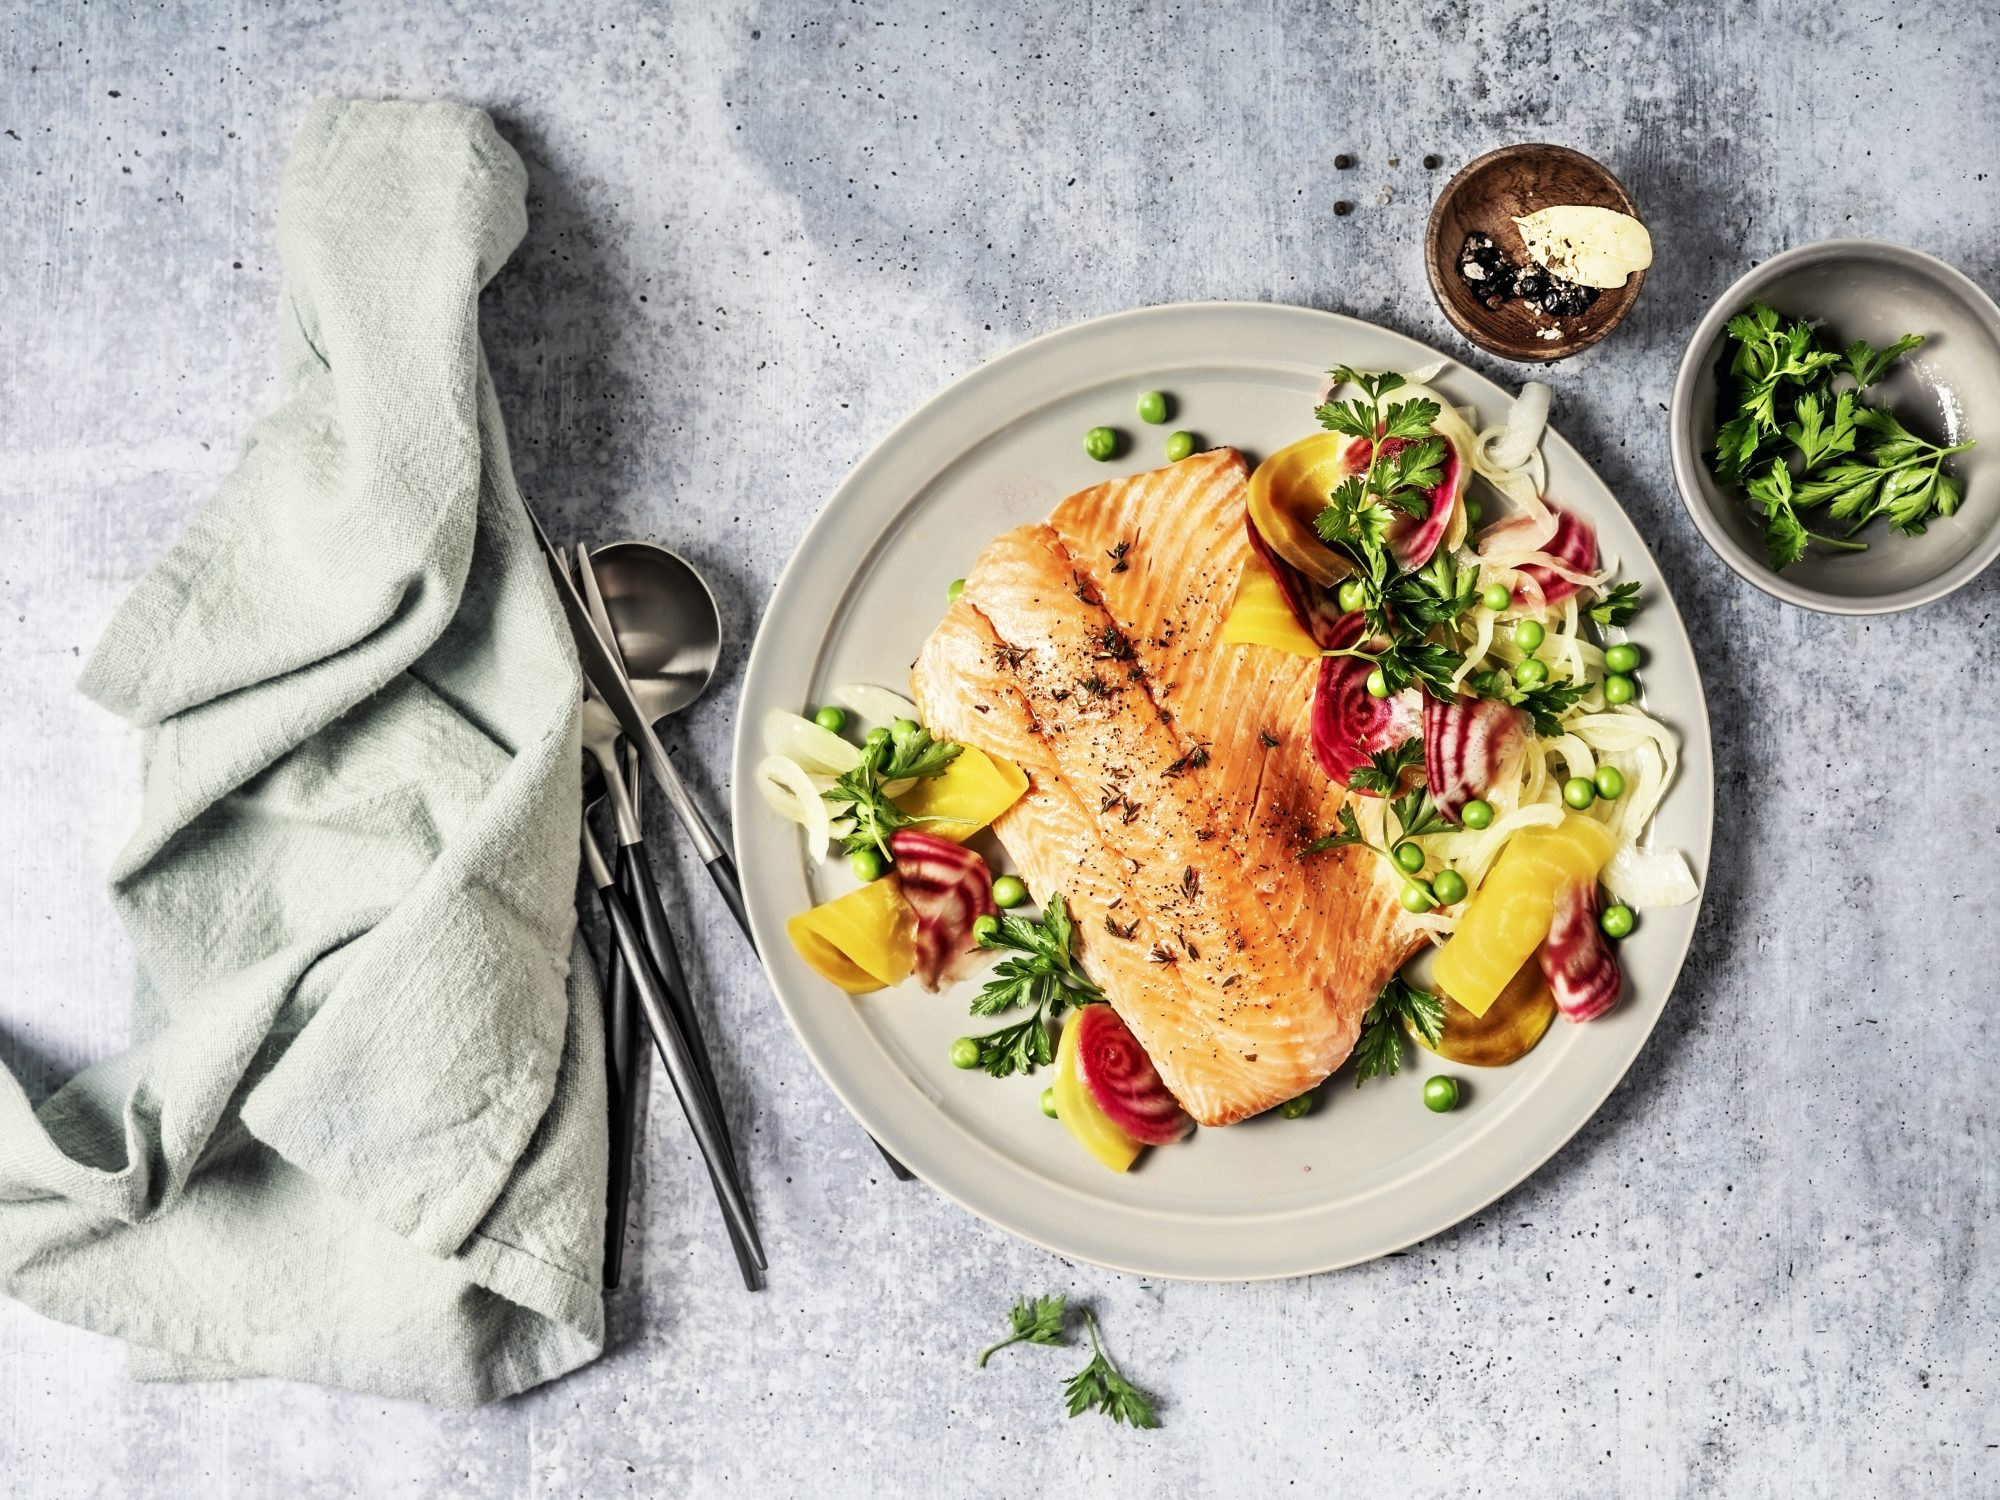 Pan fried salmon with vegetables